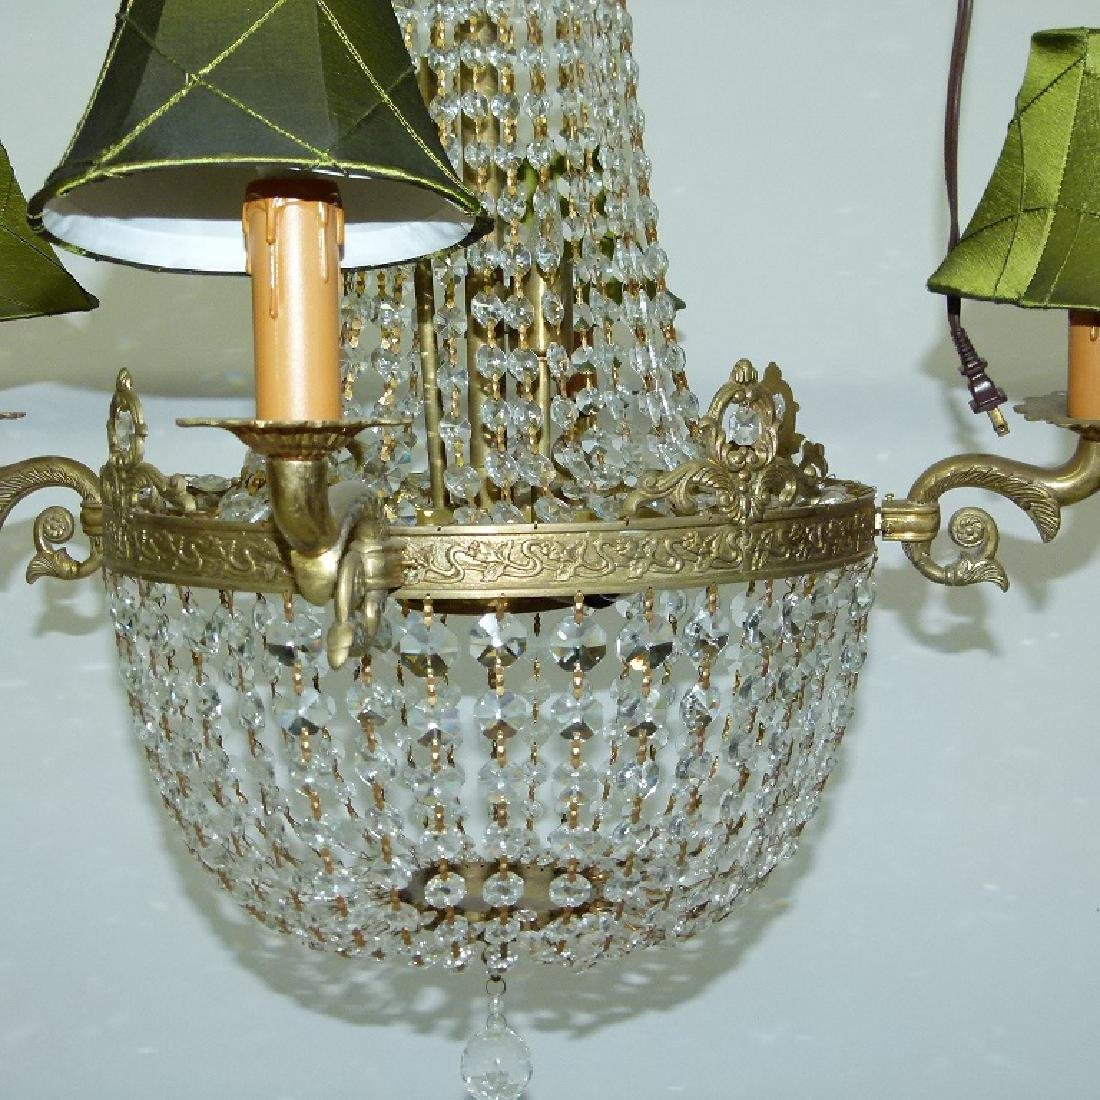 FRENCH BRONZE/CRYSTAL HANGING CHANDELIER C. 1920 - 3